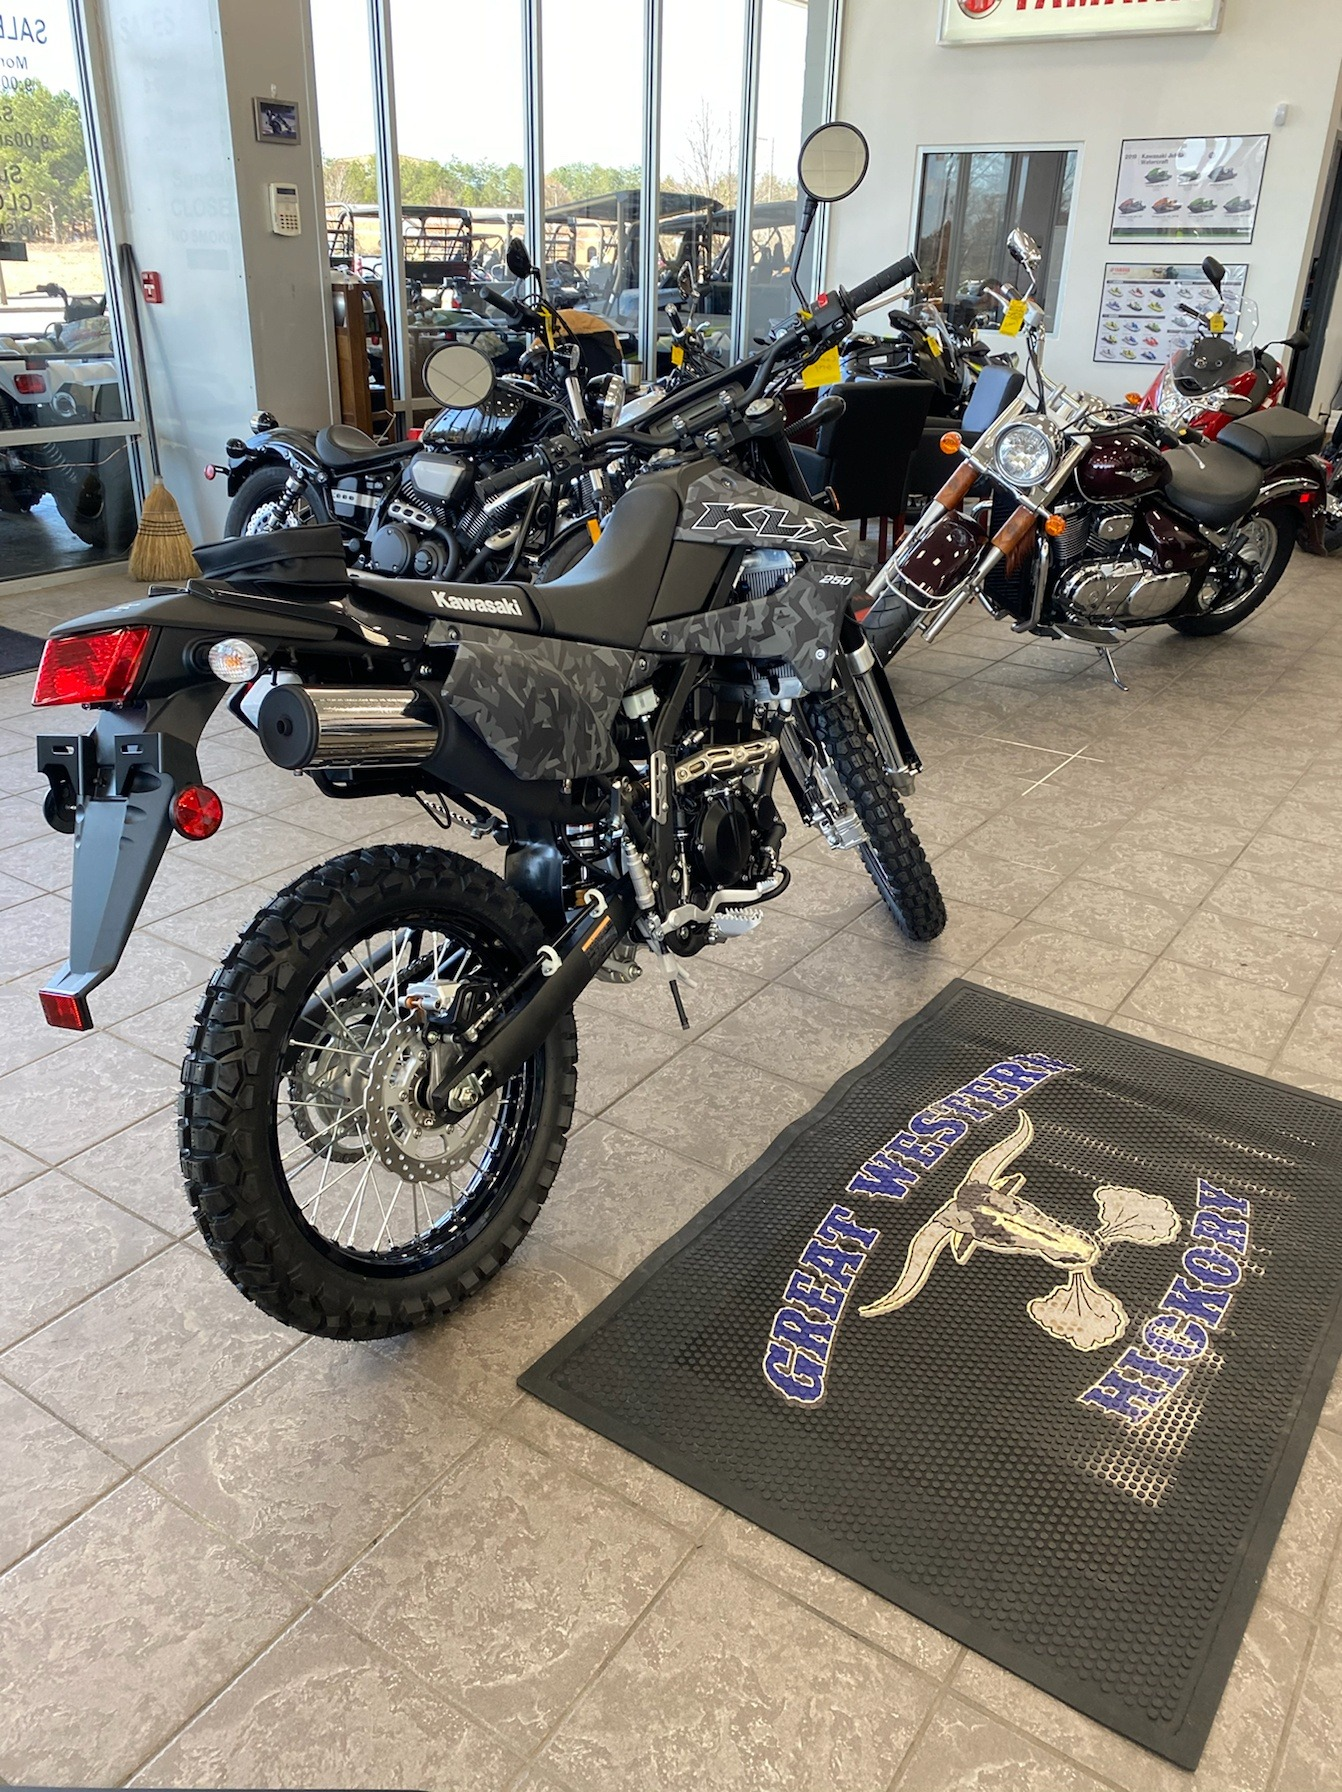 2020 Kawasaki KLX 250 in Hickory, North Carolina - Photo 2